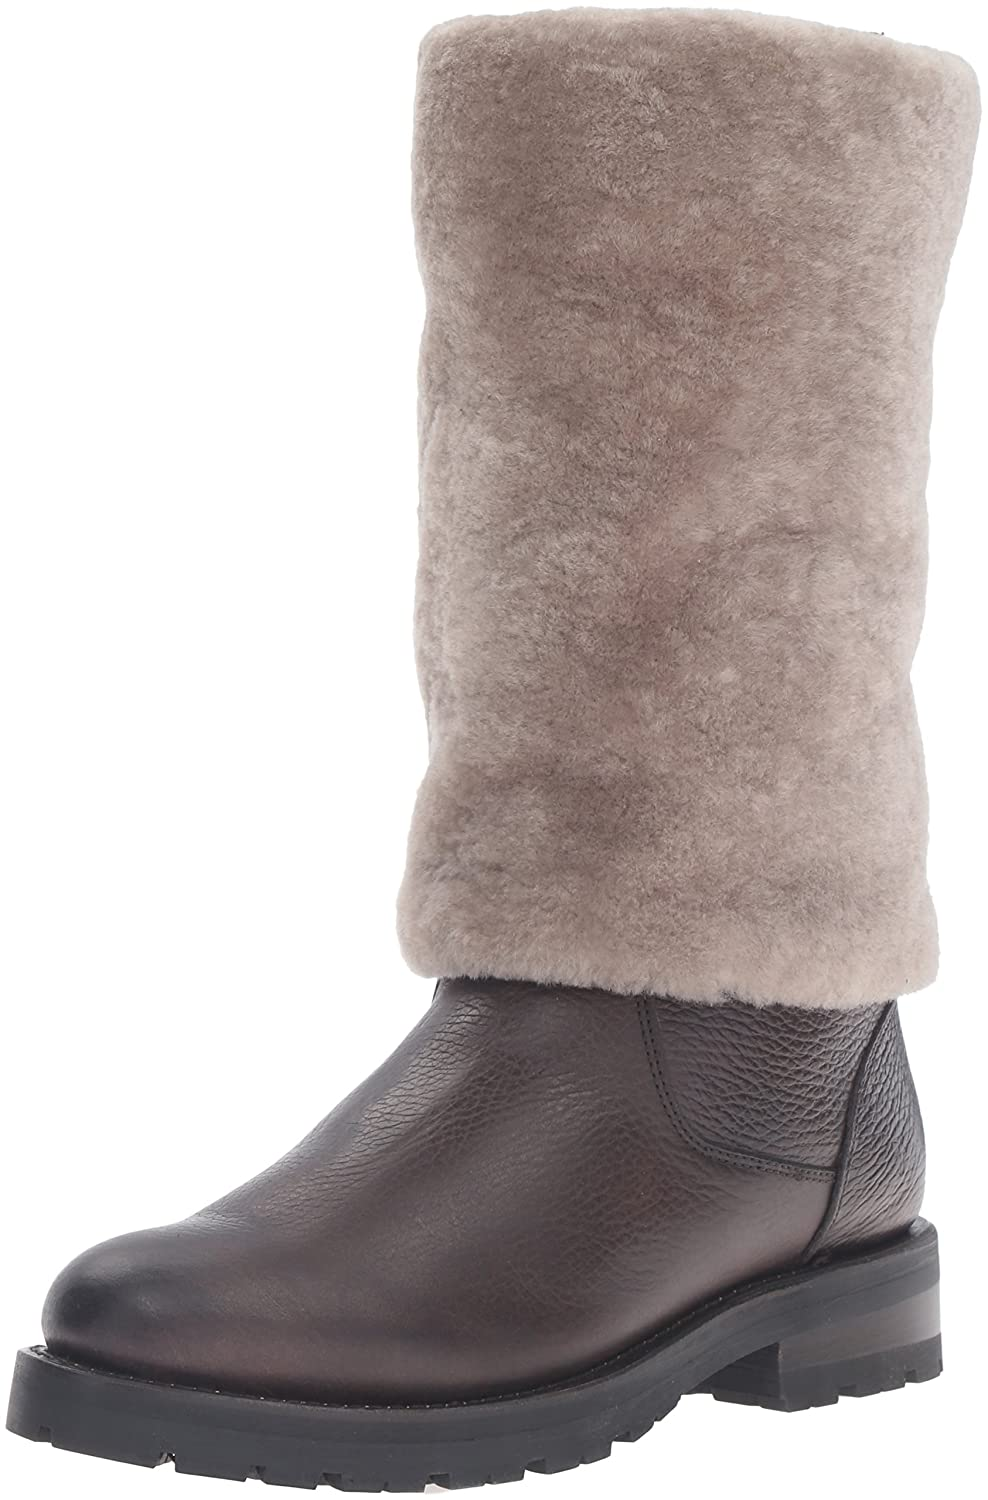 FRYE Women's Natalie Cuff Lug Winter Boot B01BM0N4V8 9 B(M) US|Dark Brown